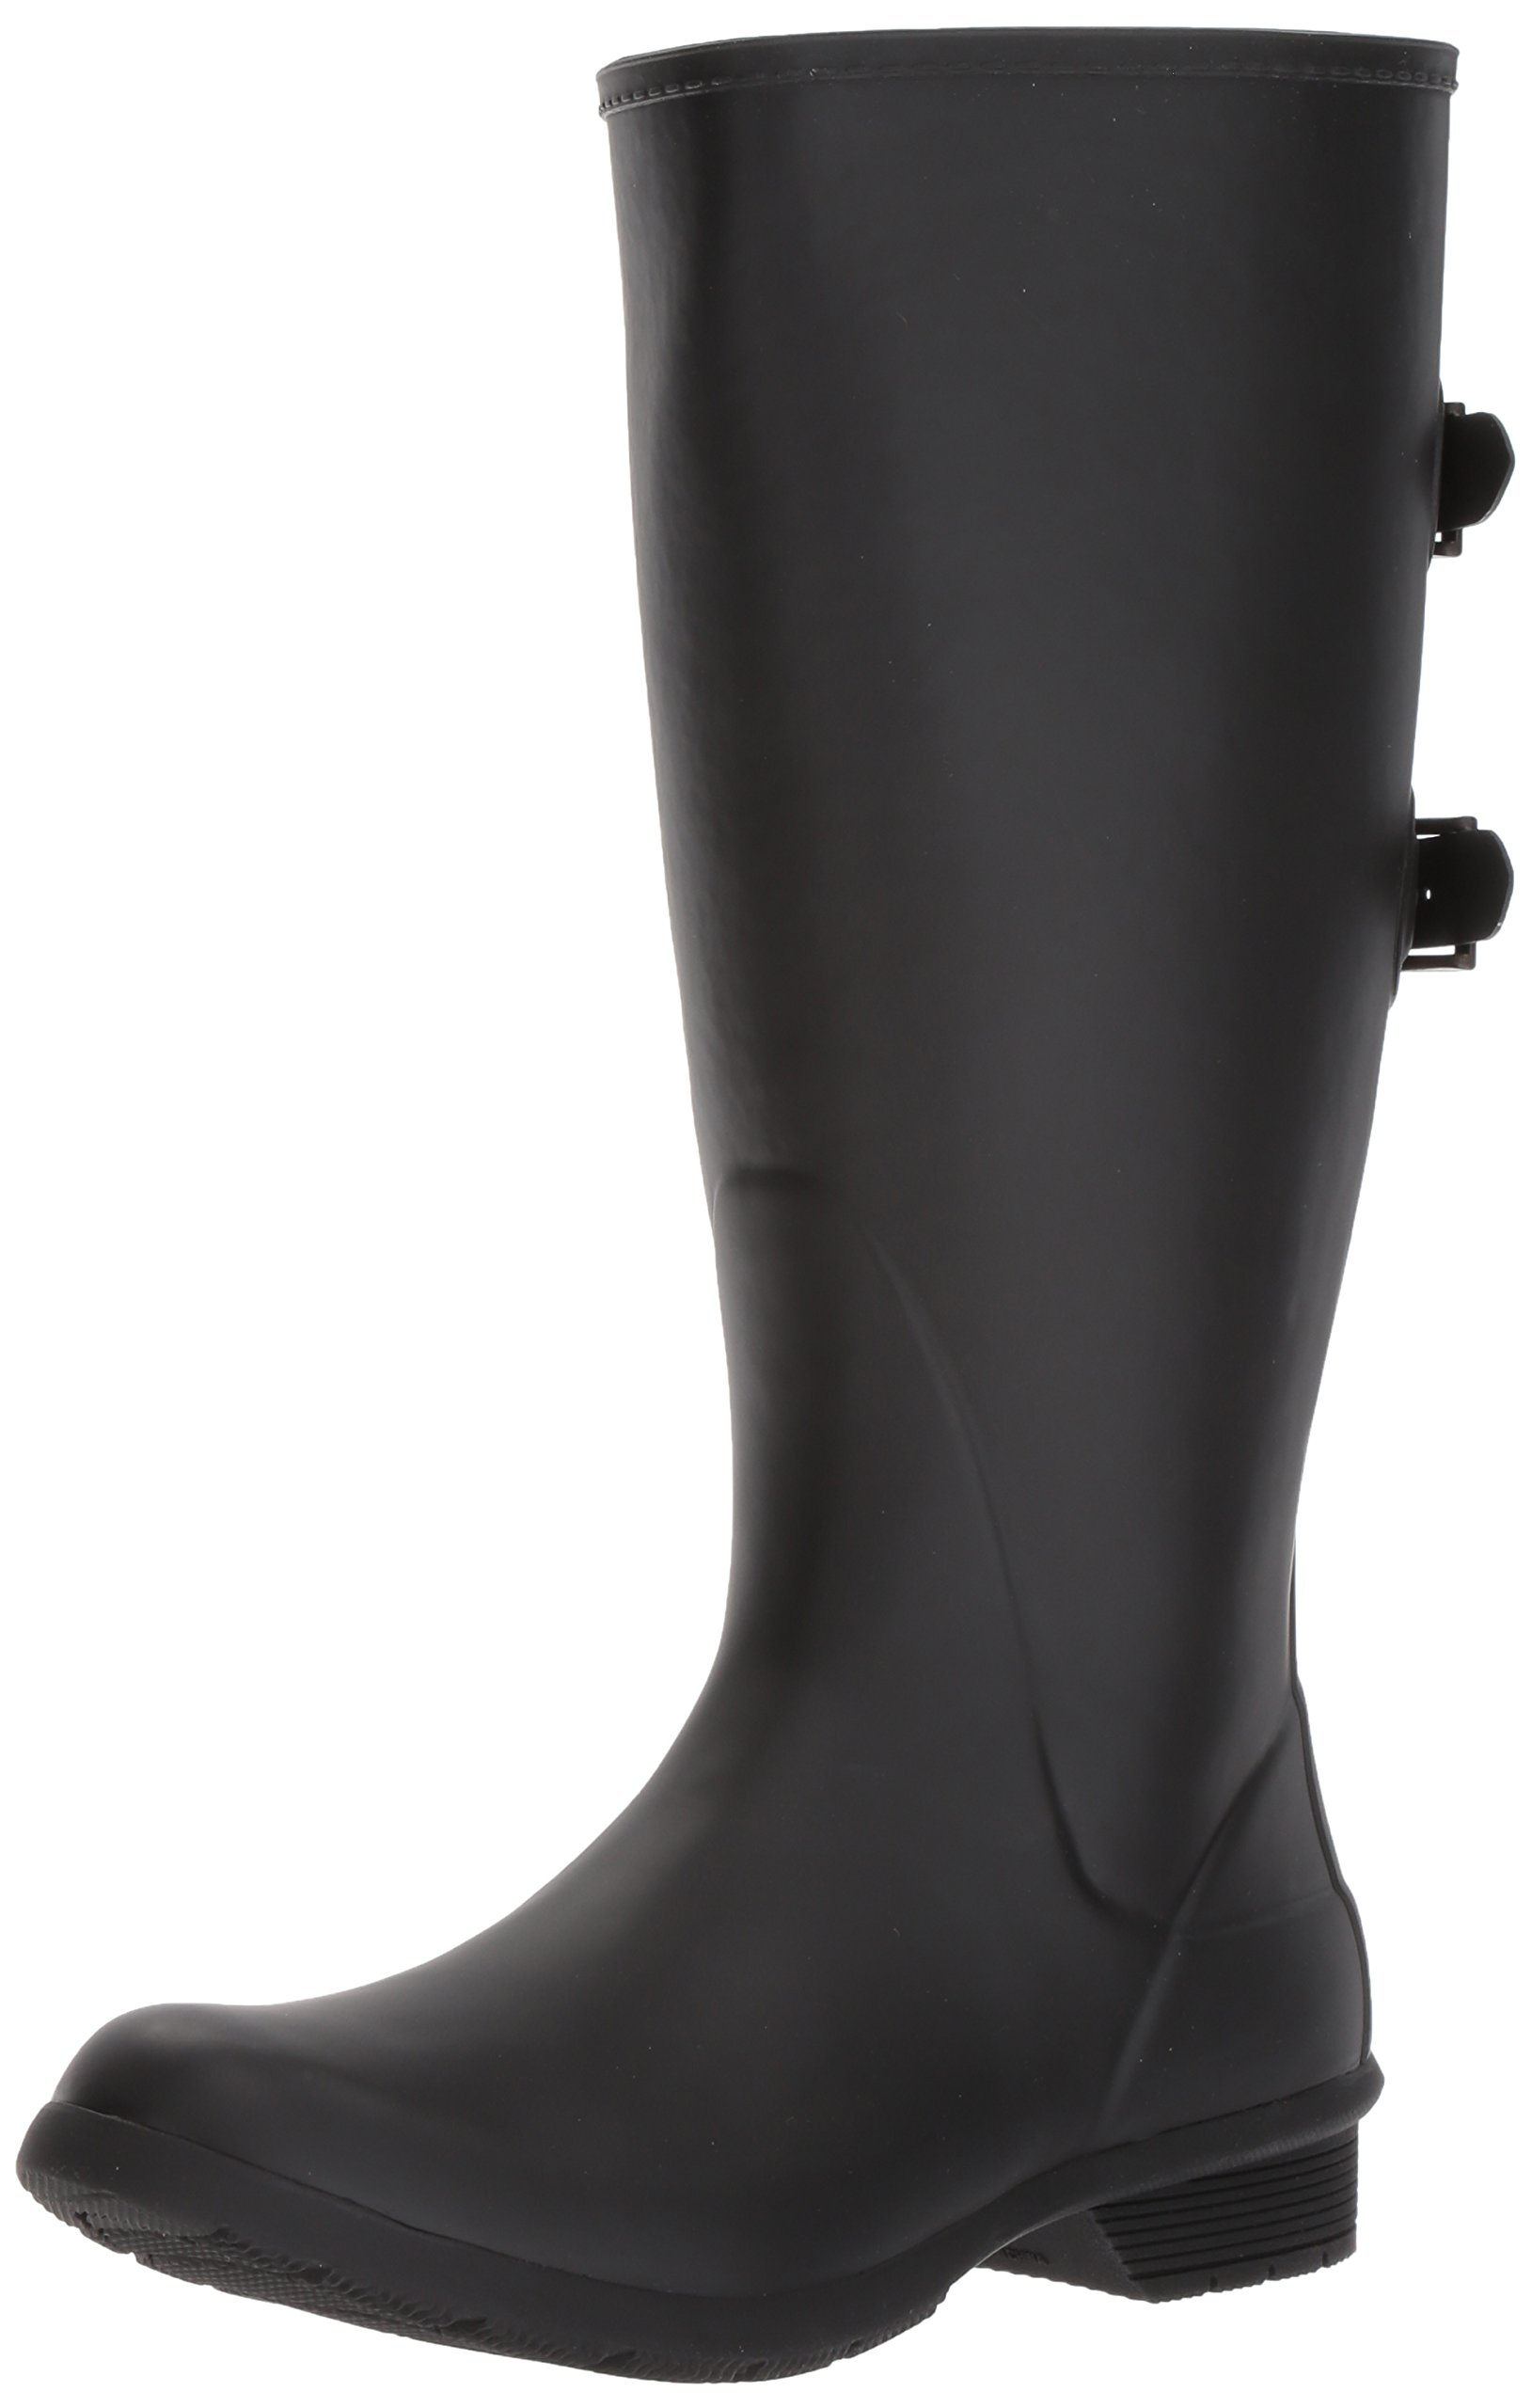 Chooka Women's Wide Calf Memory Foam Rain Boot, Black, 8 M US